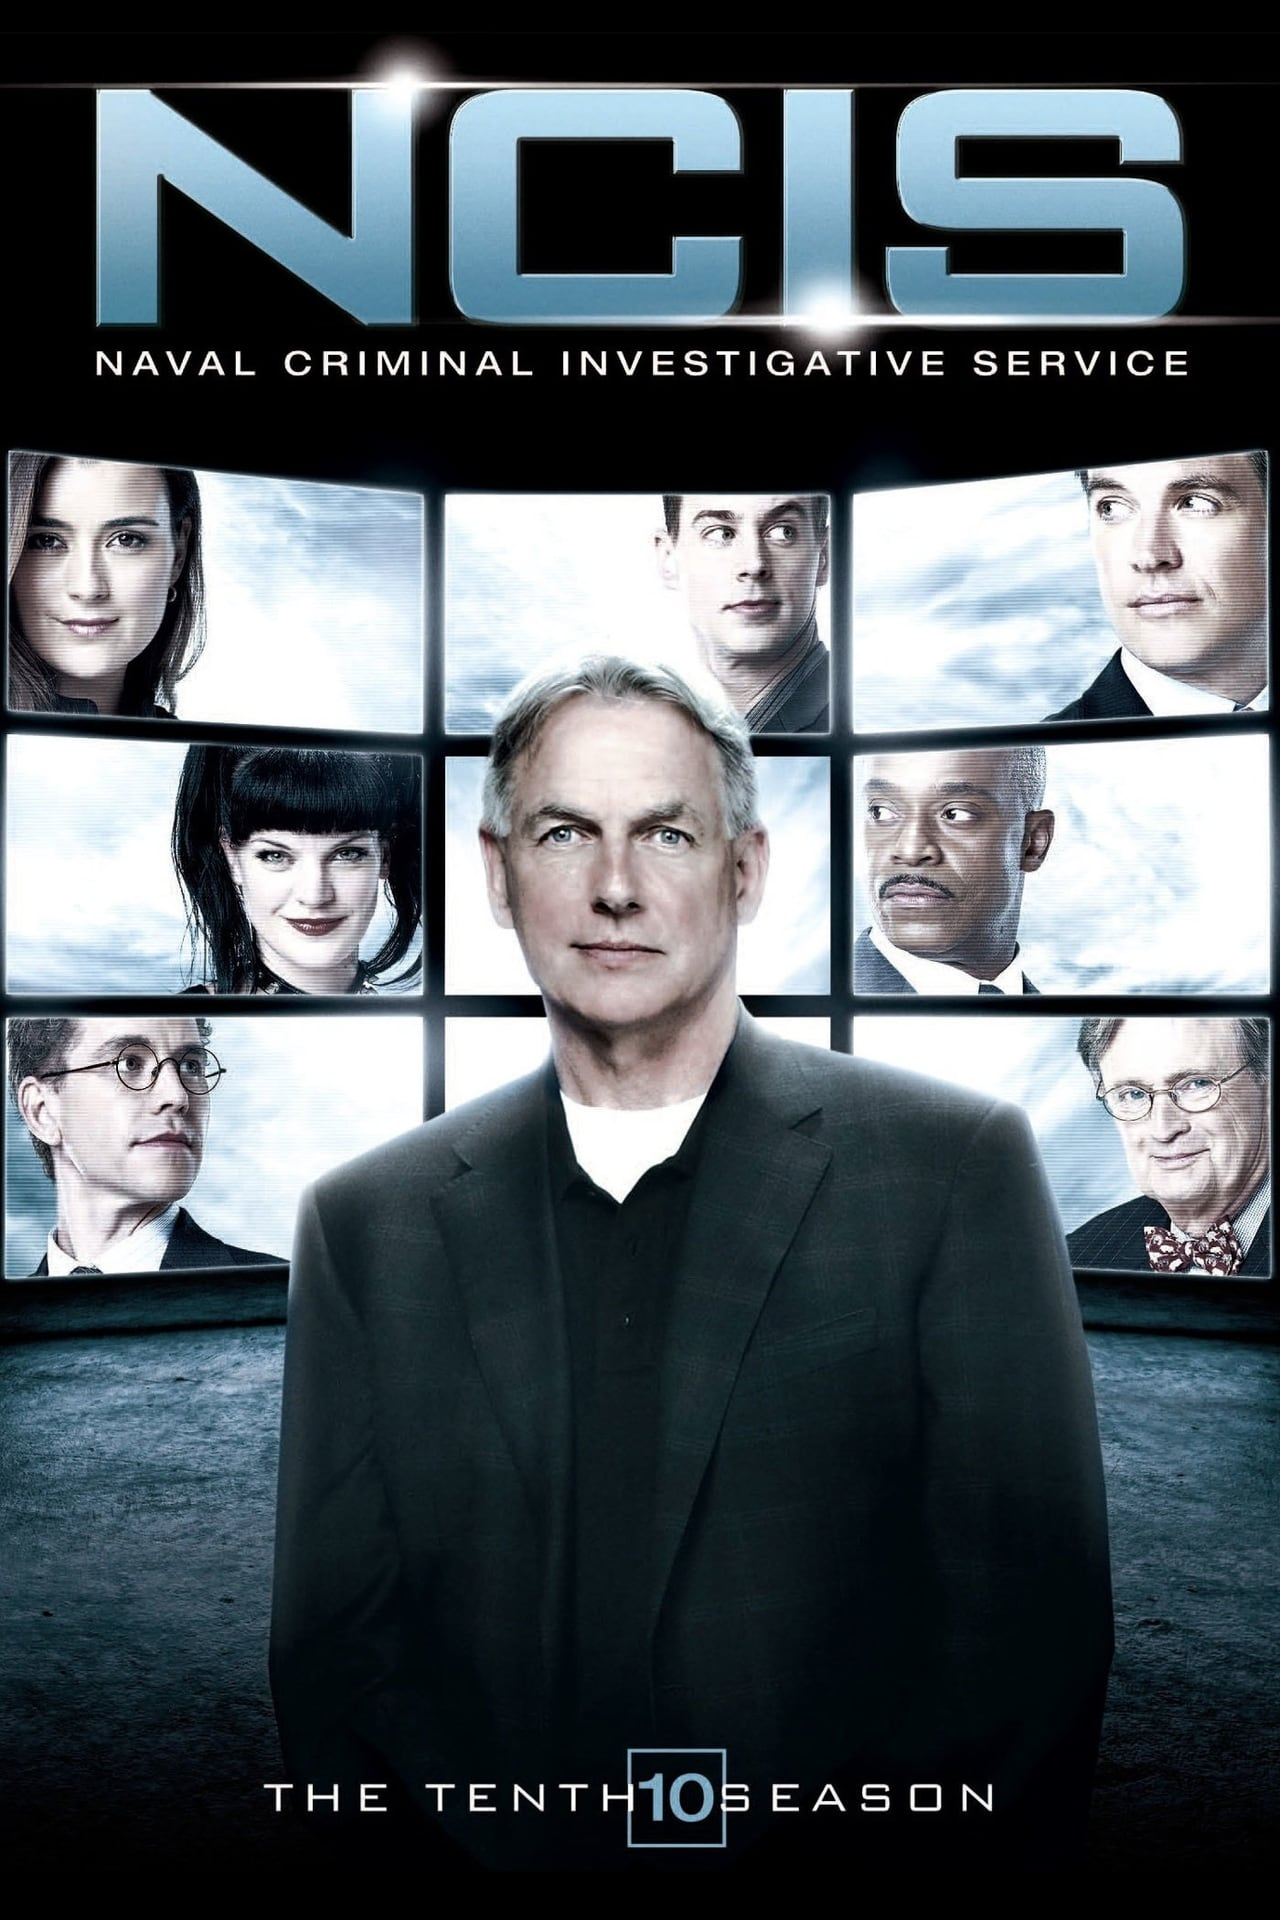 Putlocker Ncis Season 10 (2013)